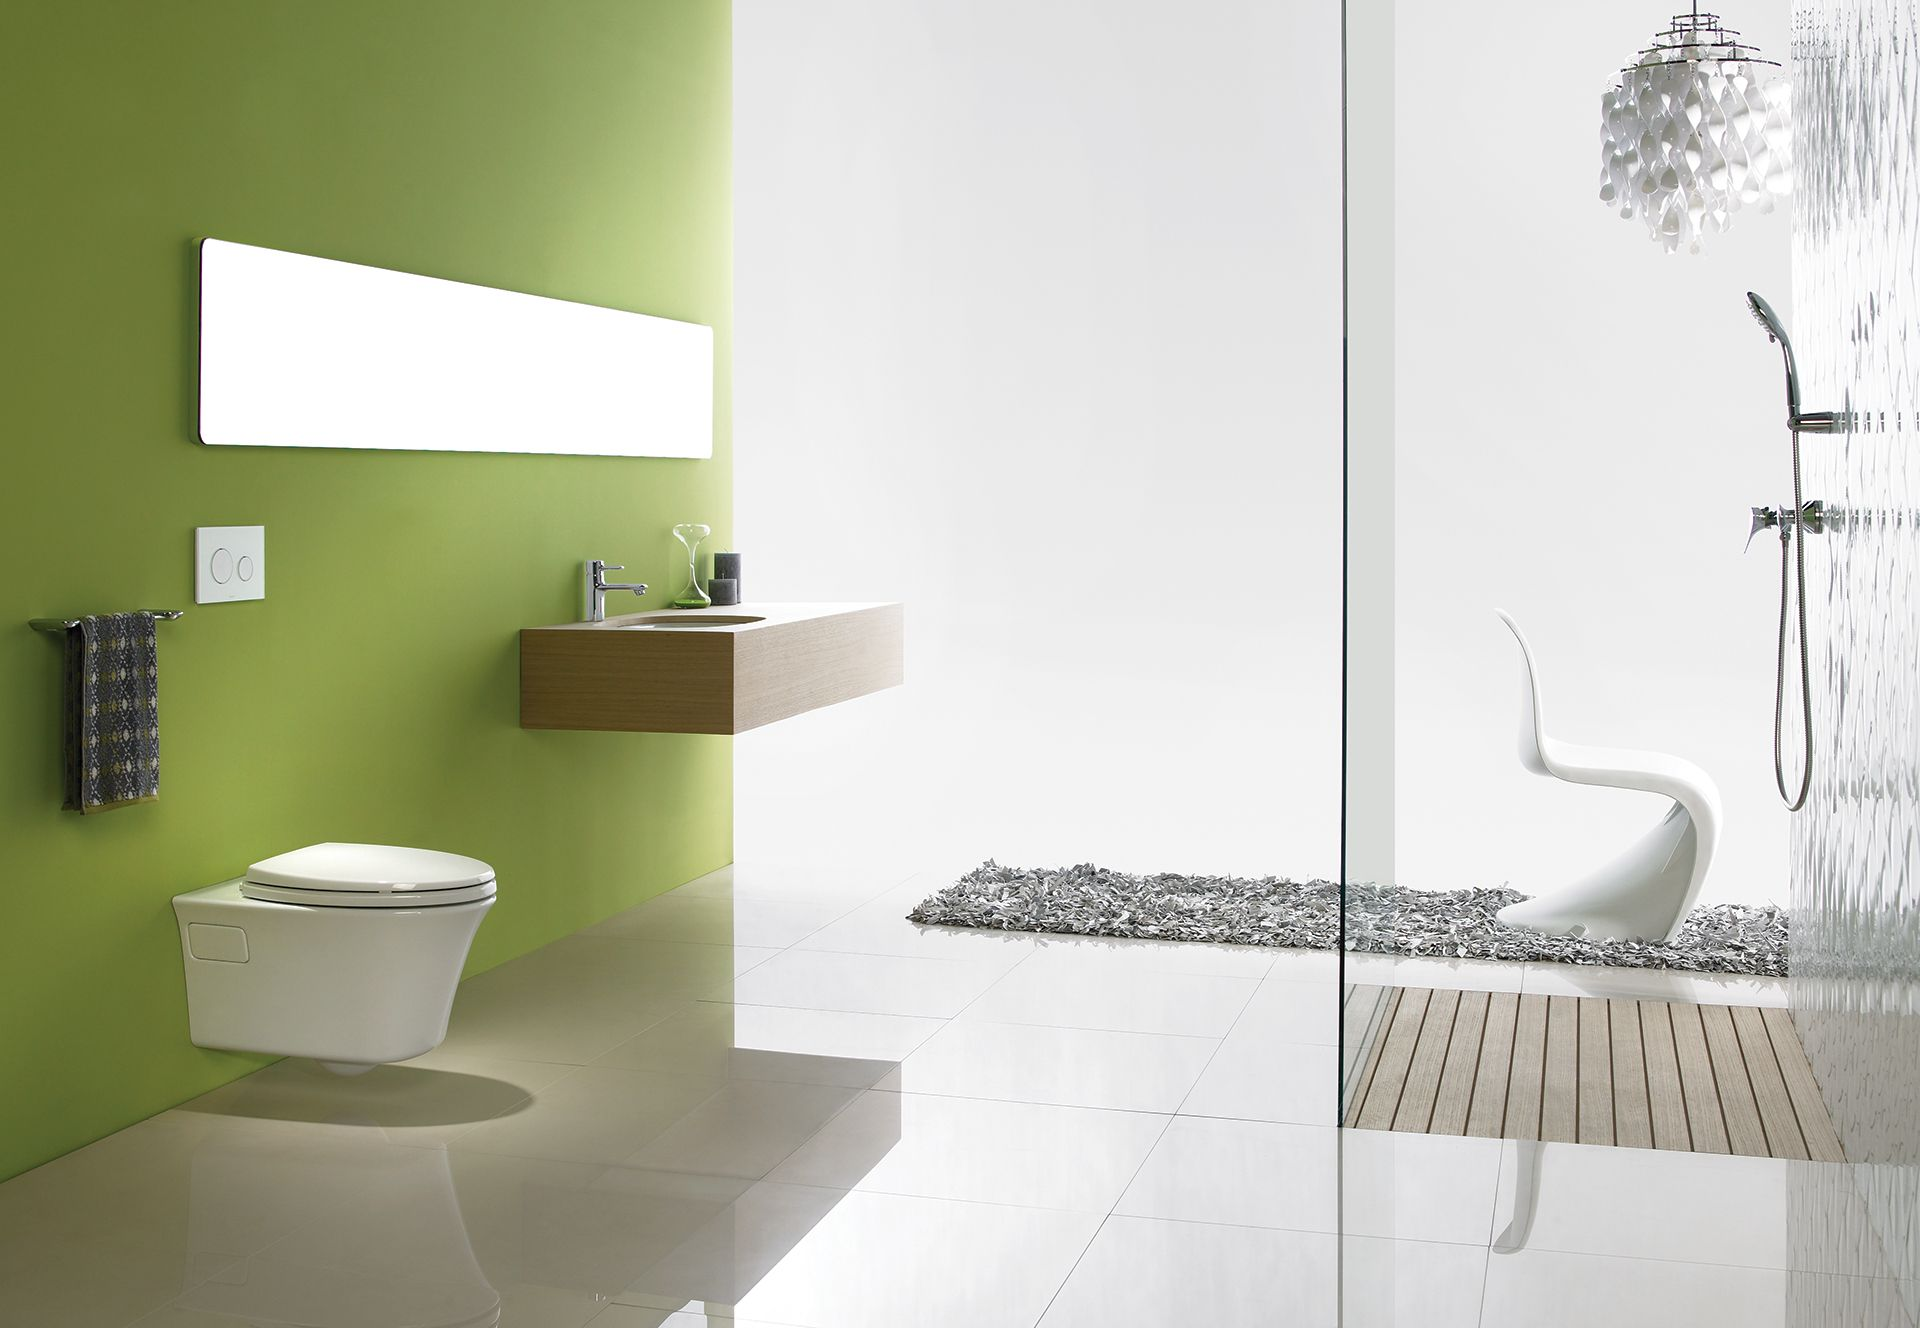 Captivating 20 Wall Hanging Toilet Design Ideas 10 Easy Pieces